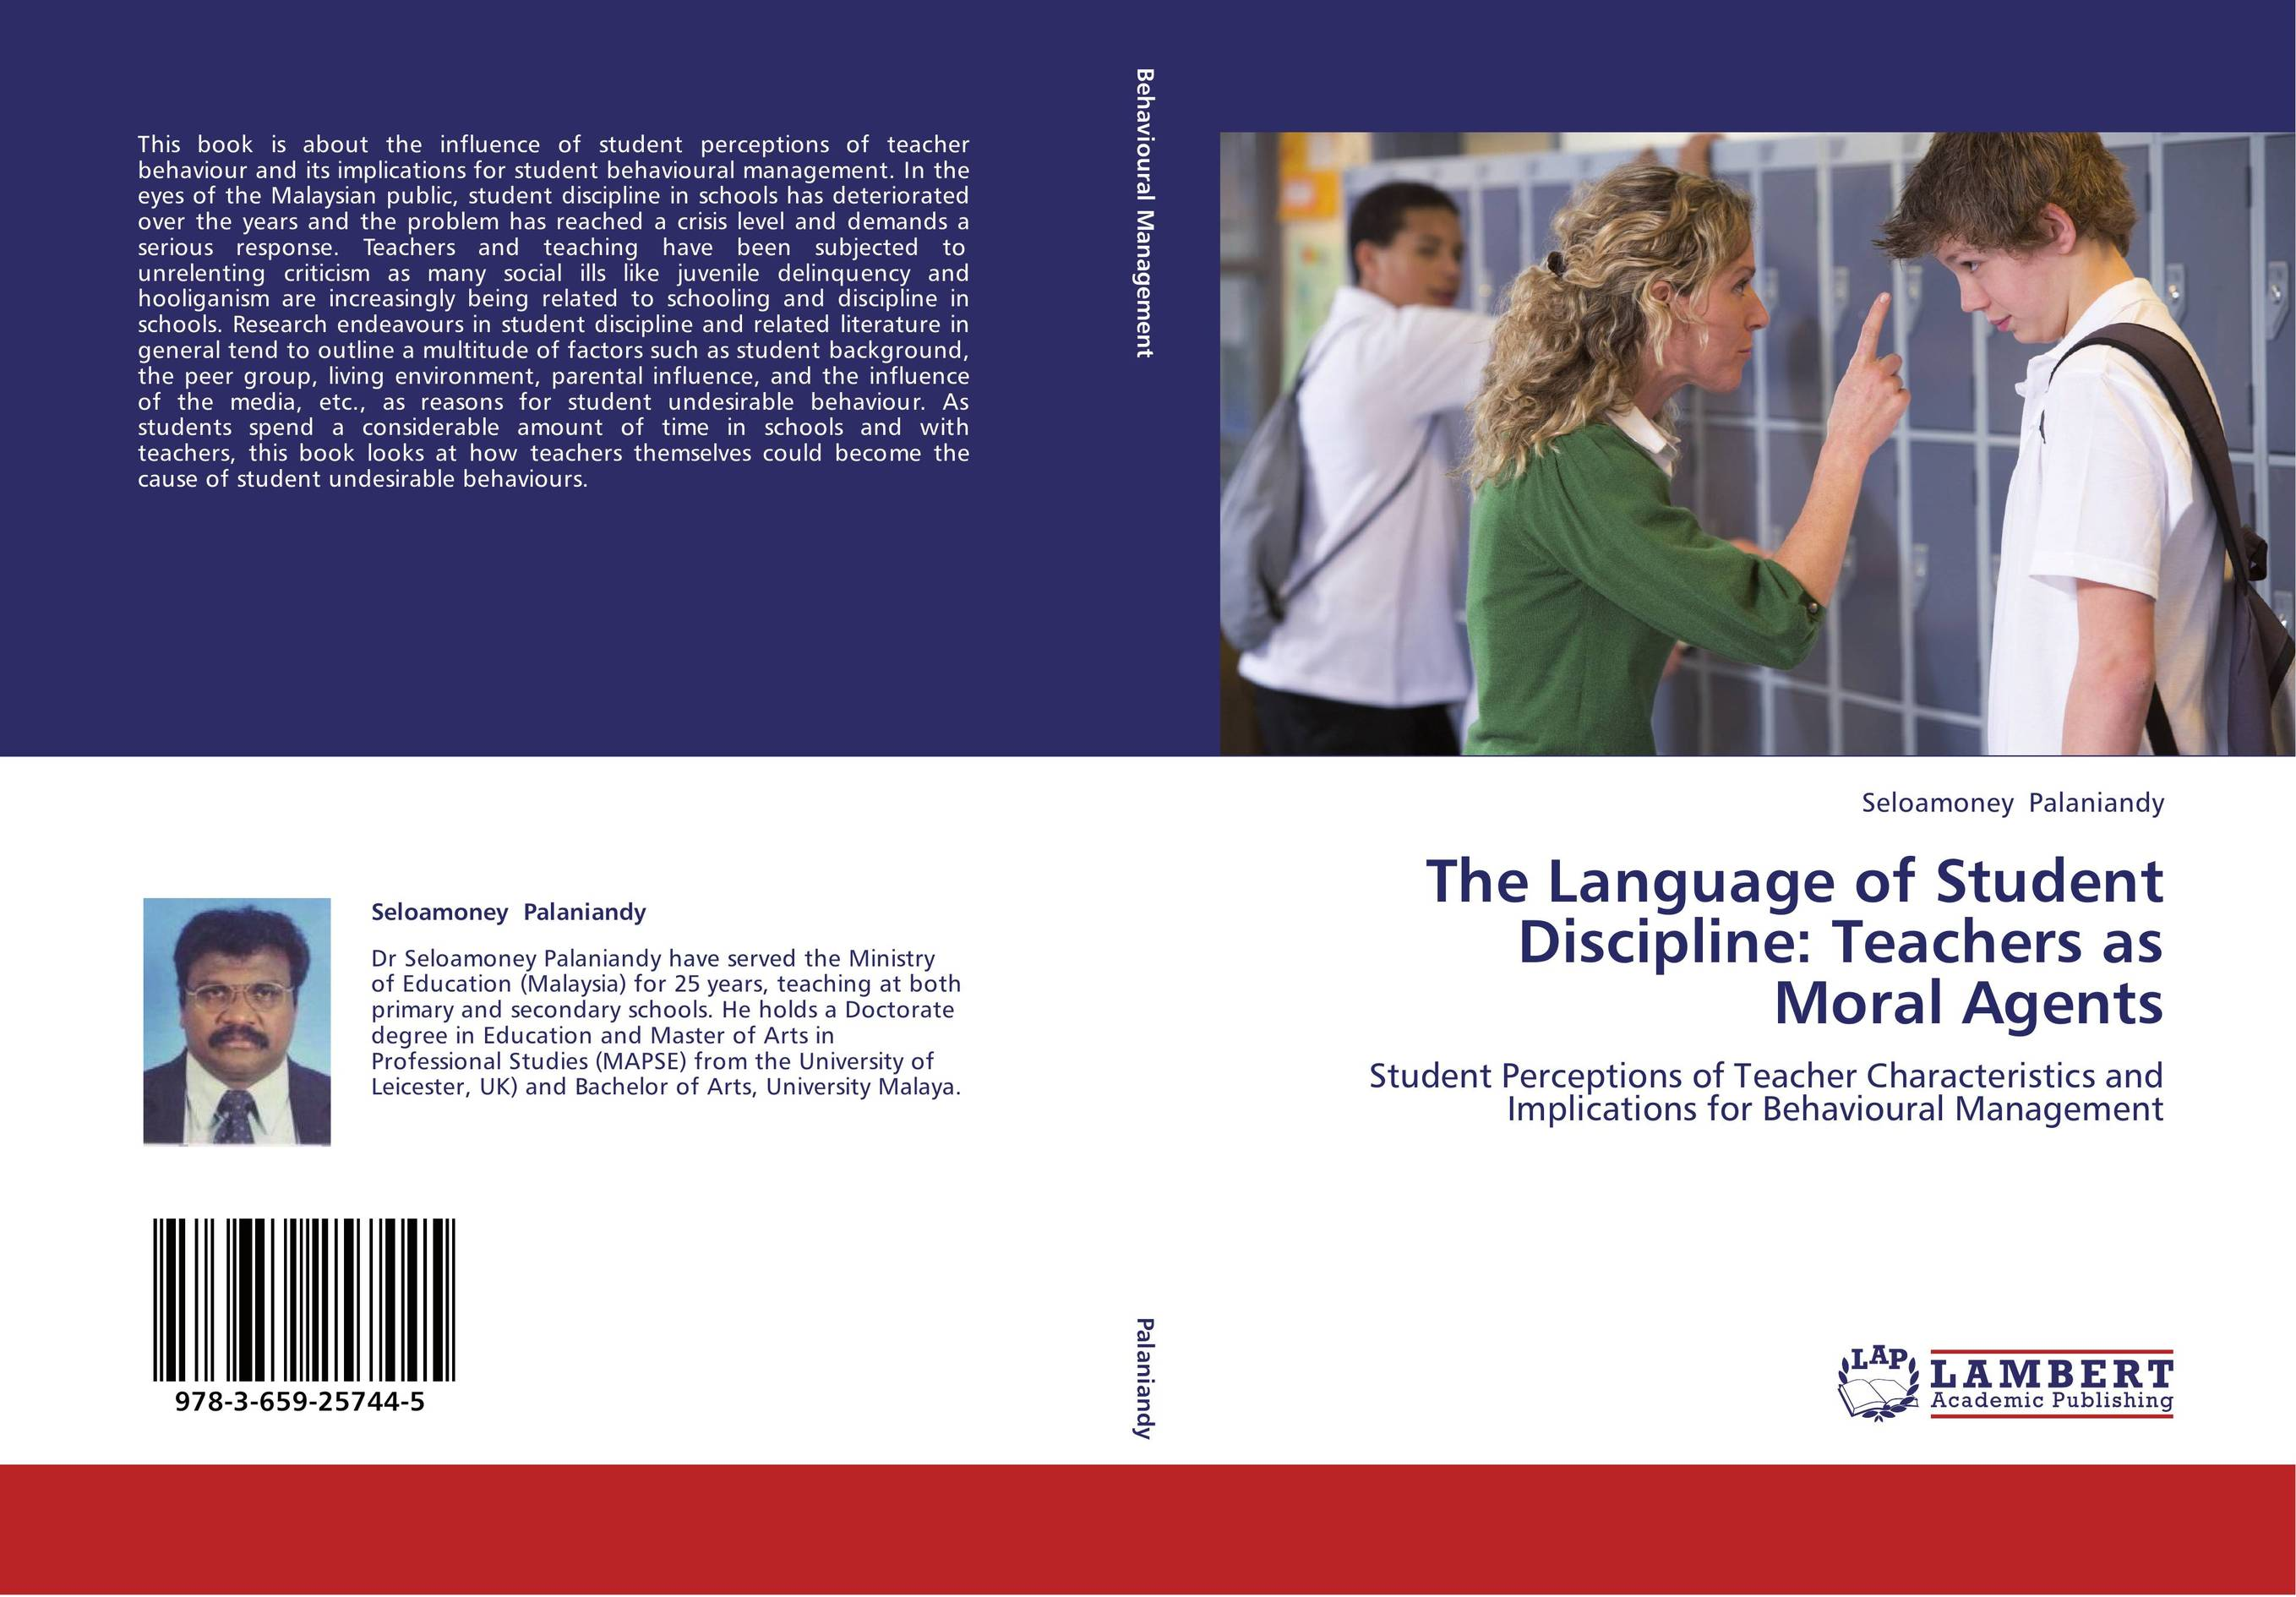 perceptions of catholic school teachers This qualitative case study is concerned with catholic school teachers' perceptions of factors related to low mathematics achievement in second through fifth grade at three catholic elementary schools in the eastern united states.